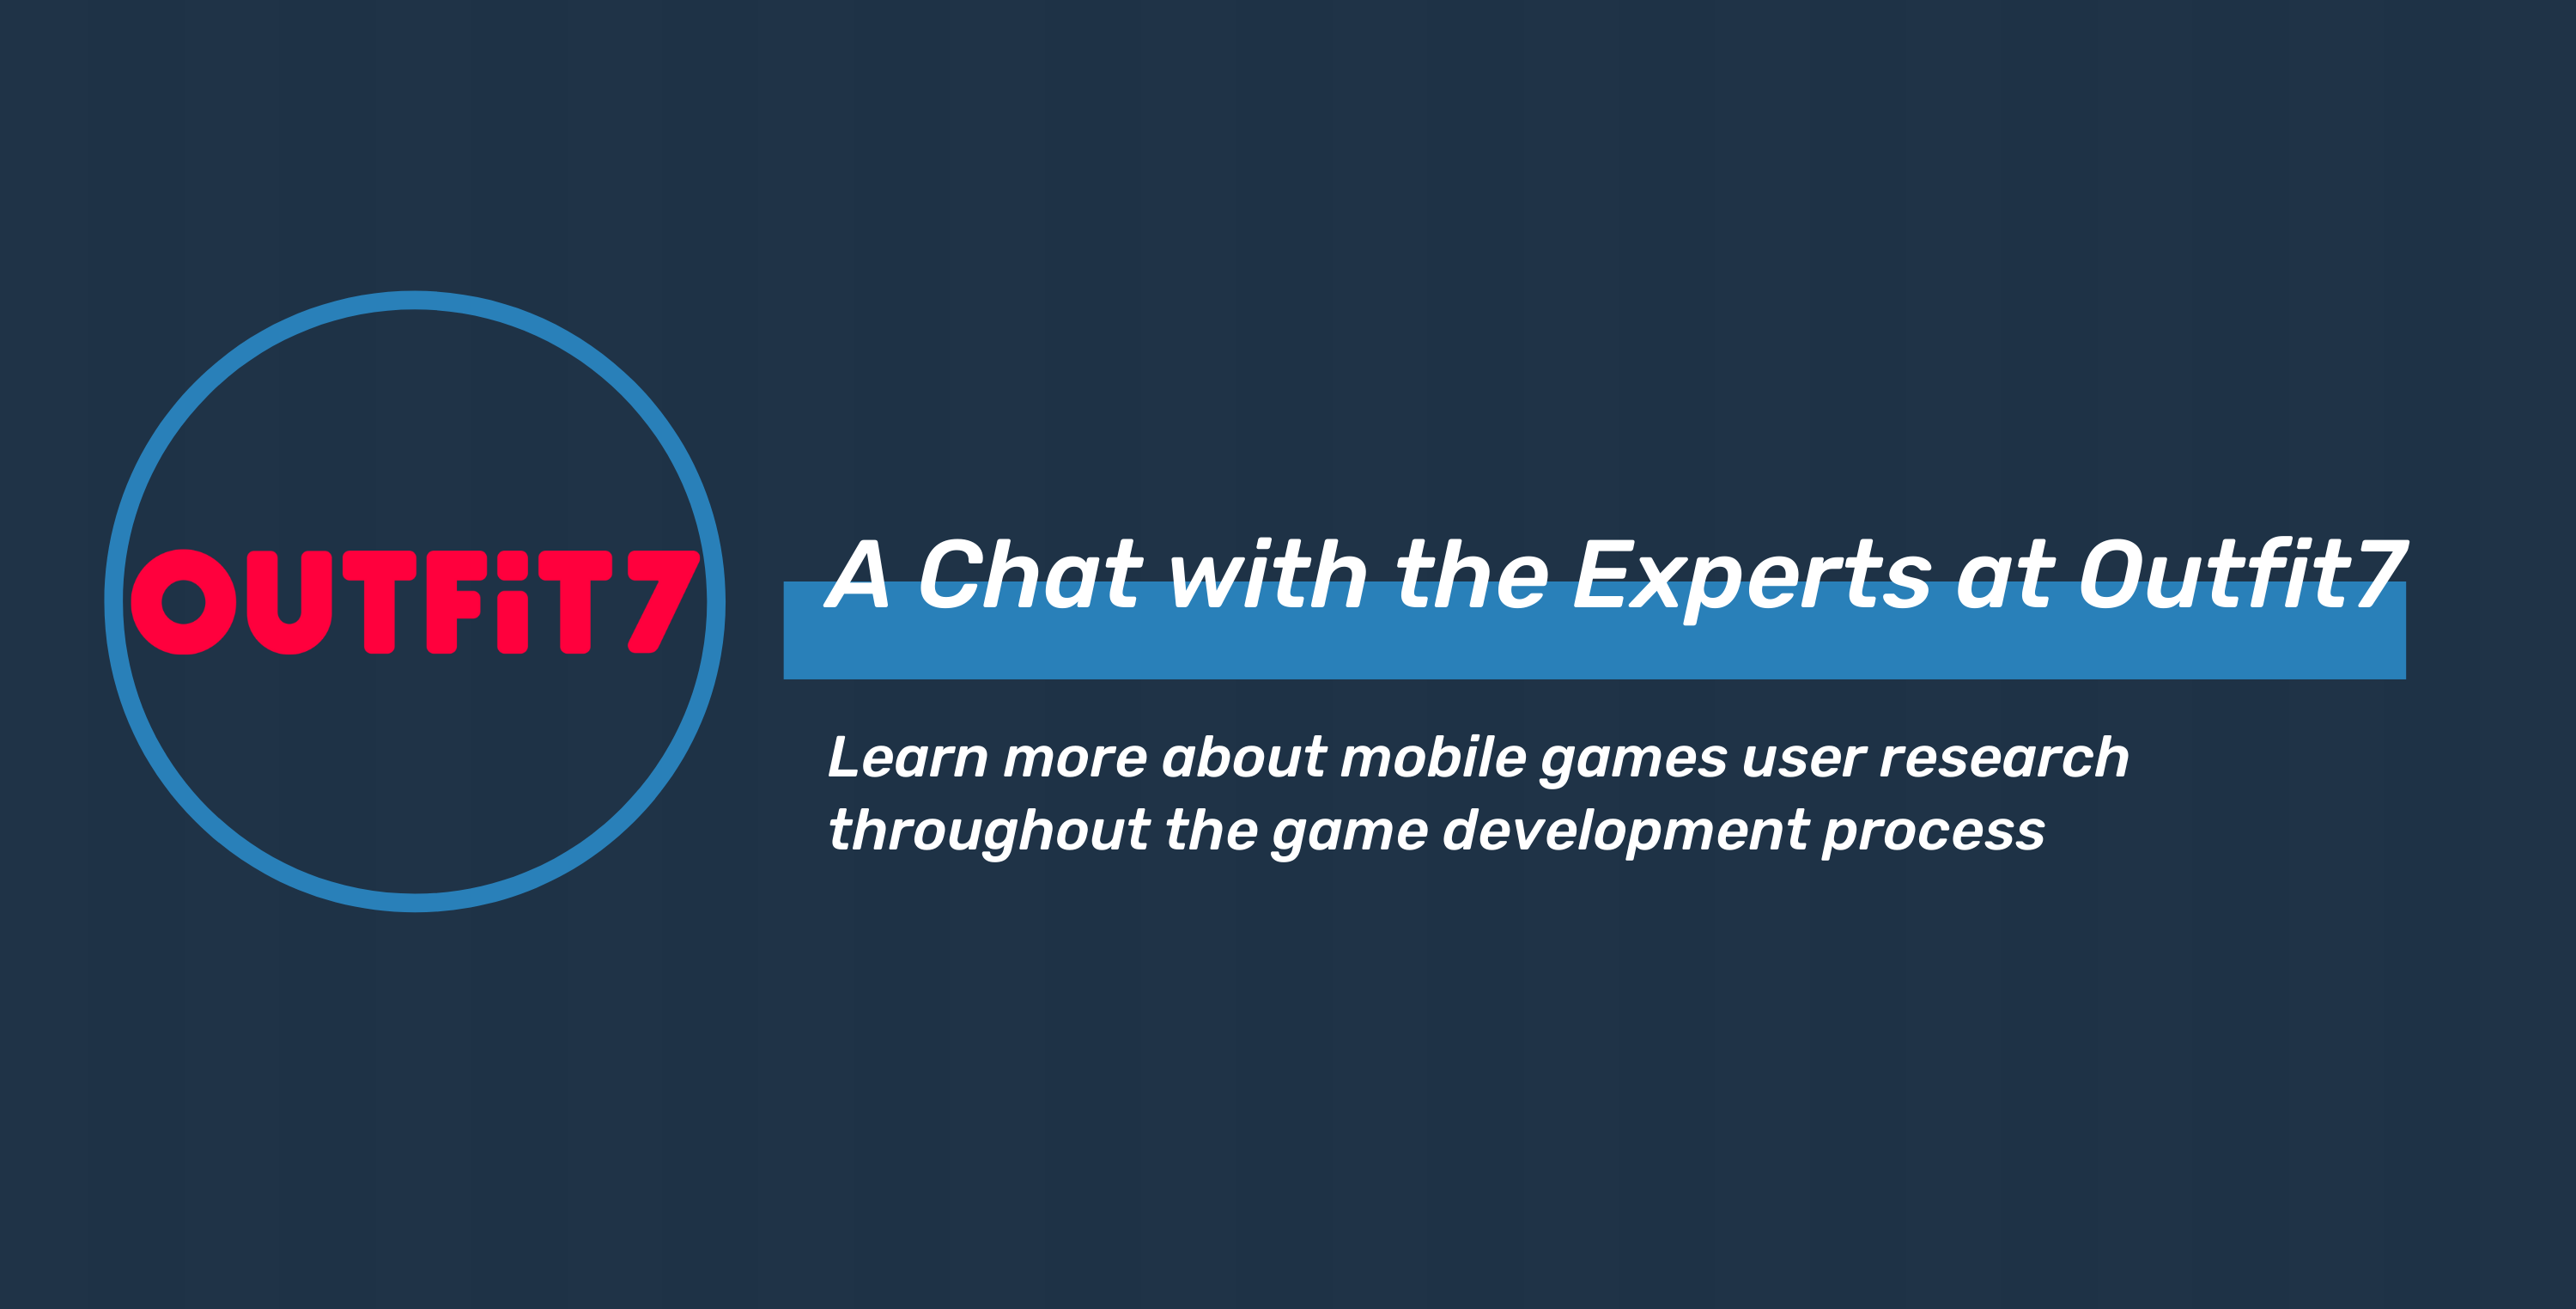 User Research Throughout the Game Development Process